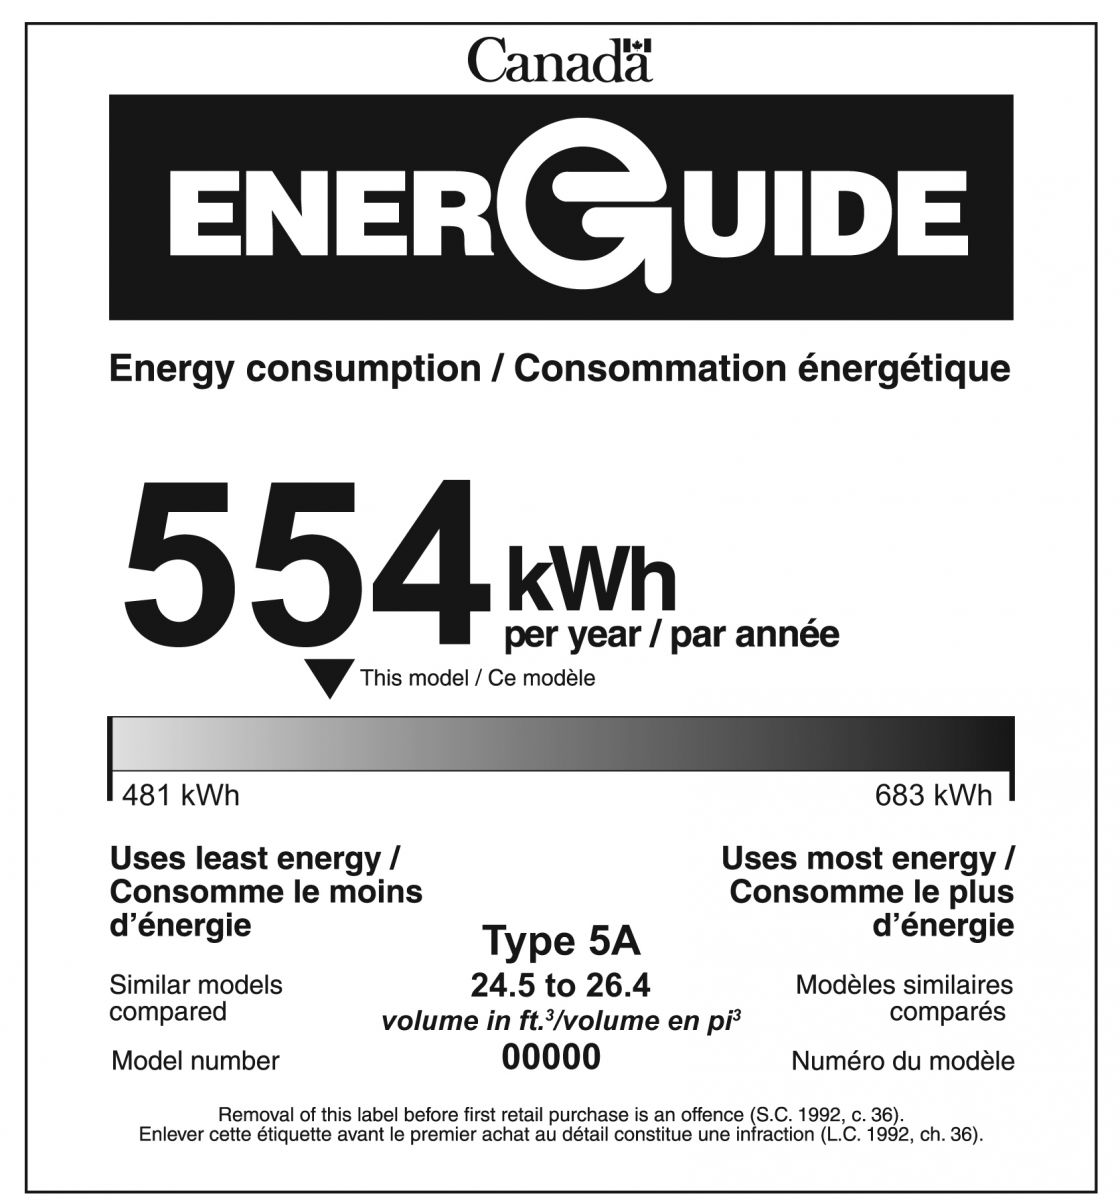 The Energuide Label